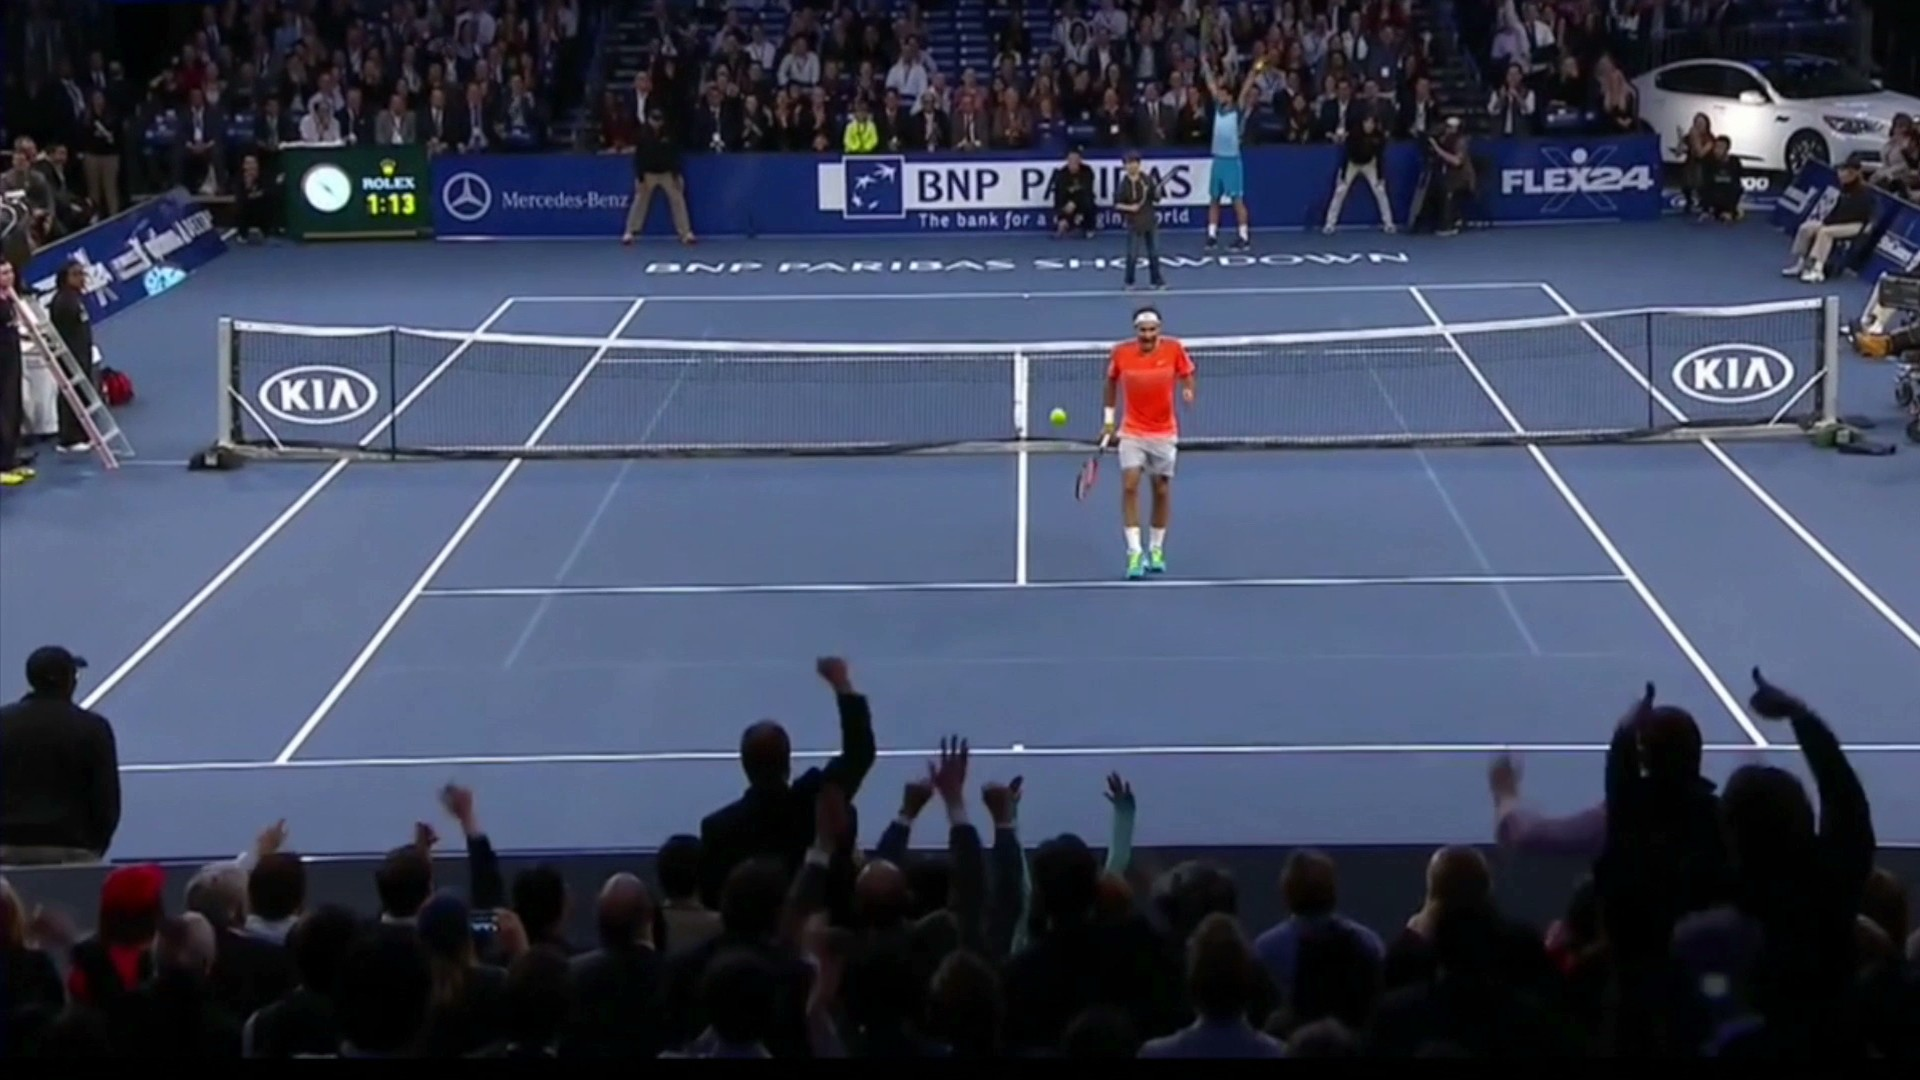 Little Kid Challenges Federer and Schools Him With Overhead Lob